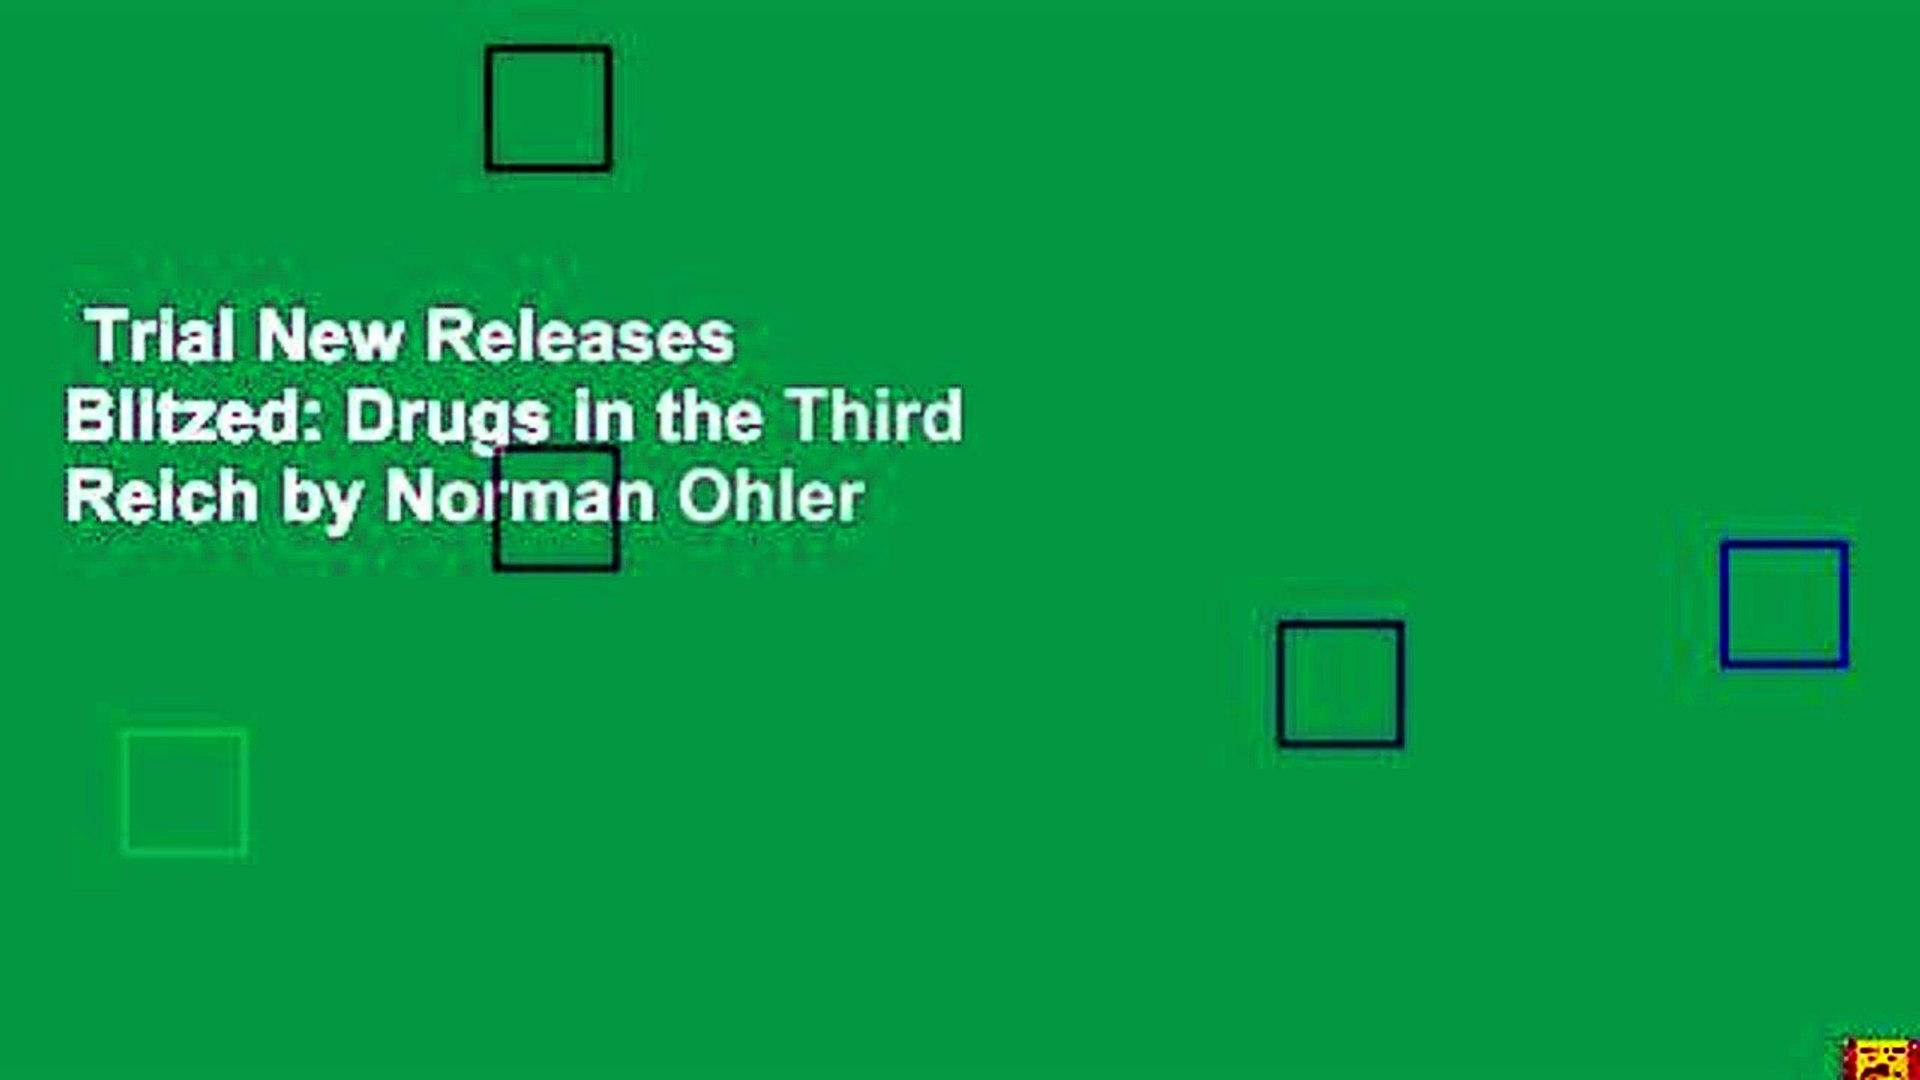 Trial New Releases Blitzed: Drugs in the Third Reich by Norman Ohler